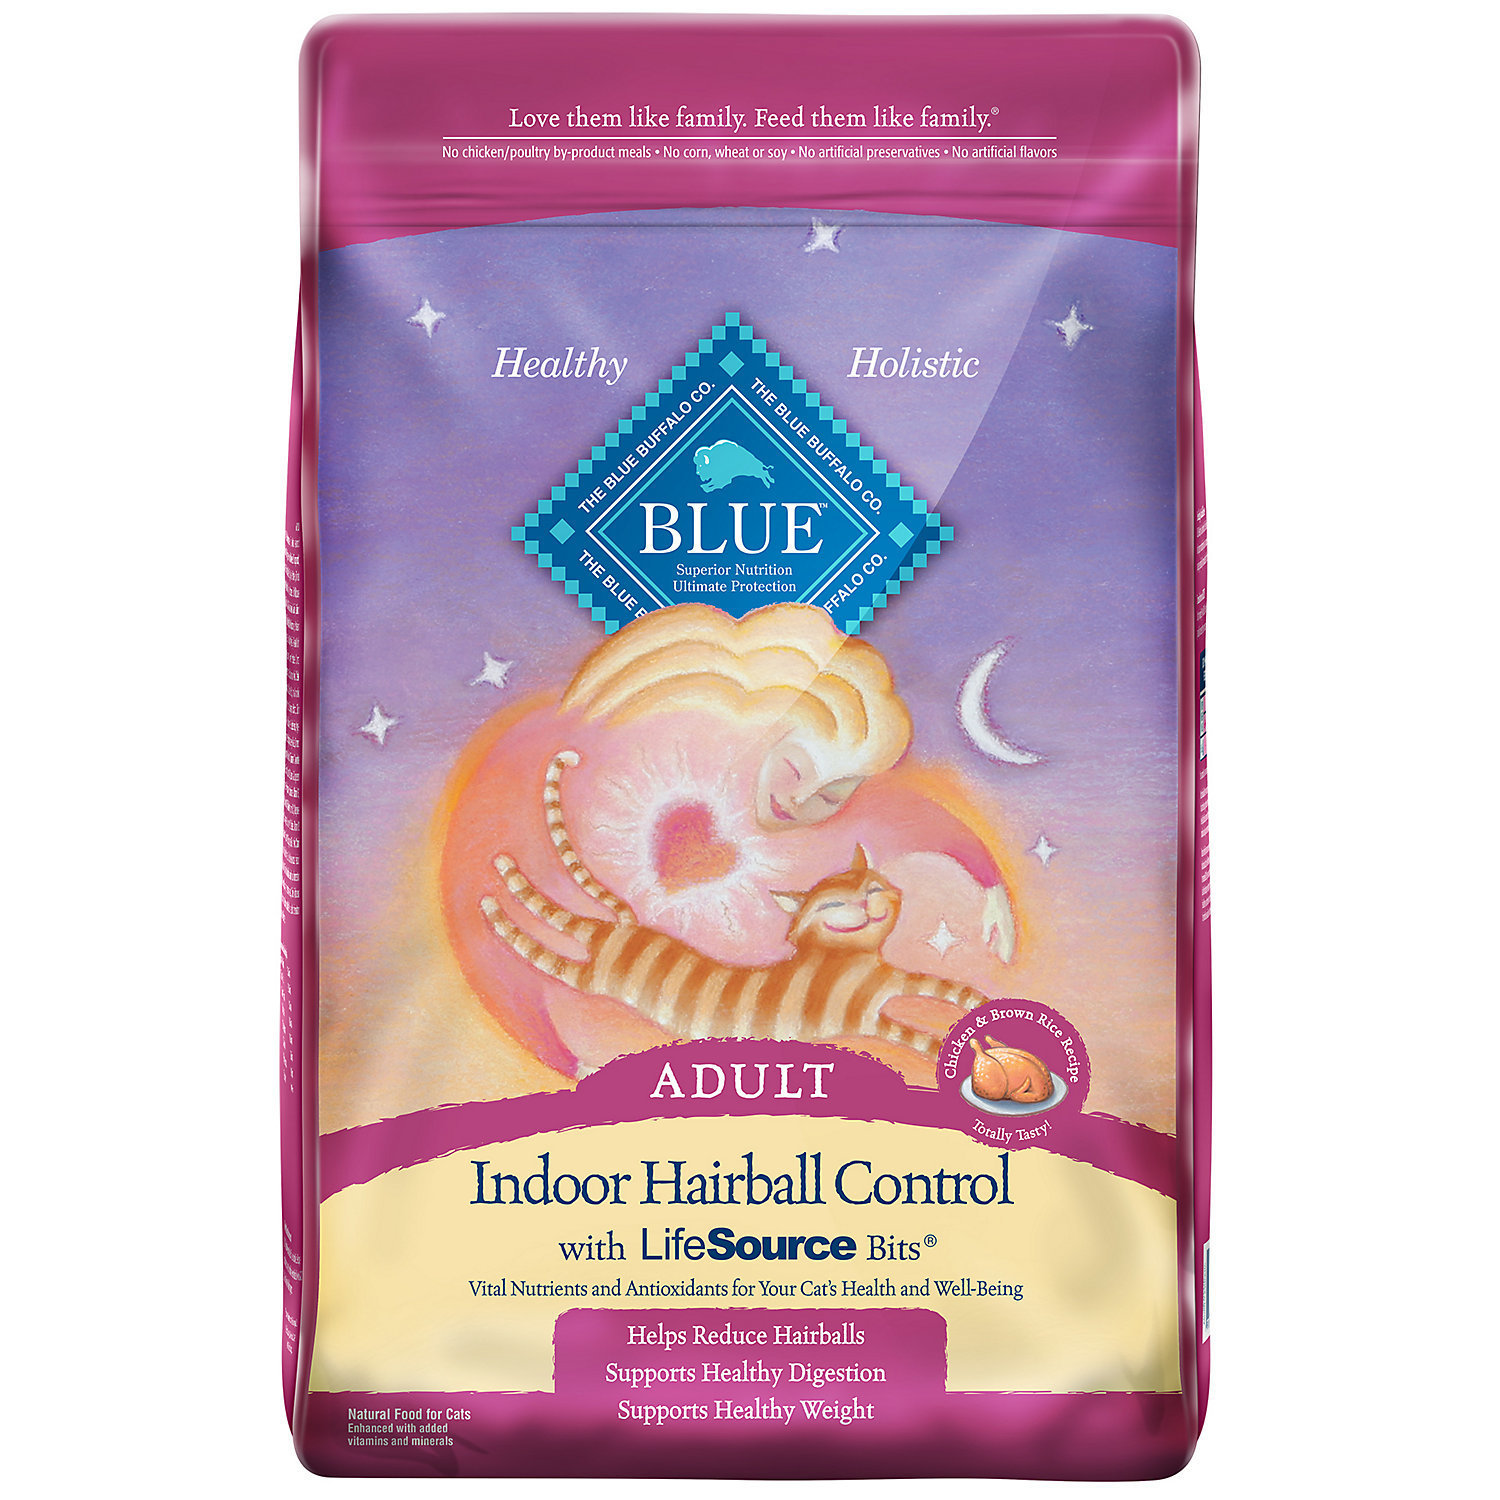 Blue Buffalo Indoor Hairball Control Chicken & Brown Rice Adult Cat Food, 15 lbs (9/18) (A.P2)